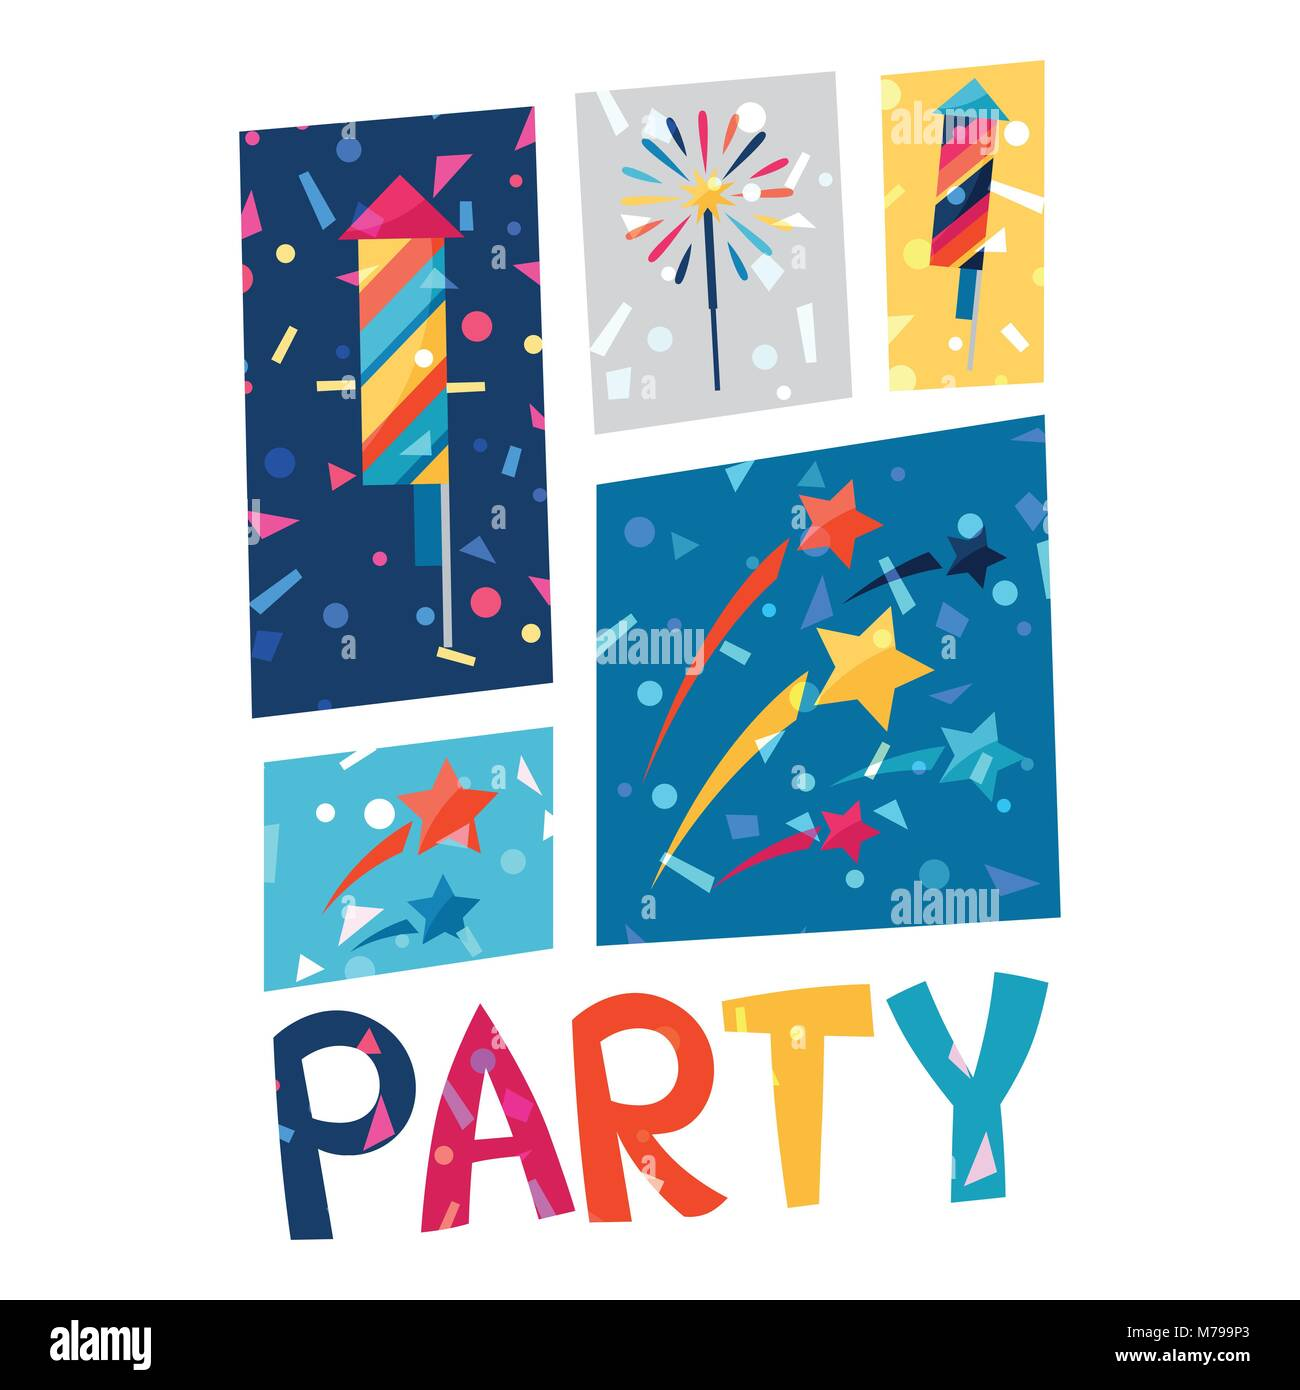 Celebration party poster with shiny confetti. - Stock Vector